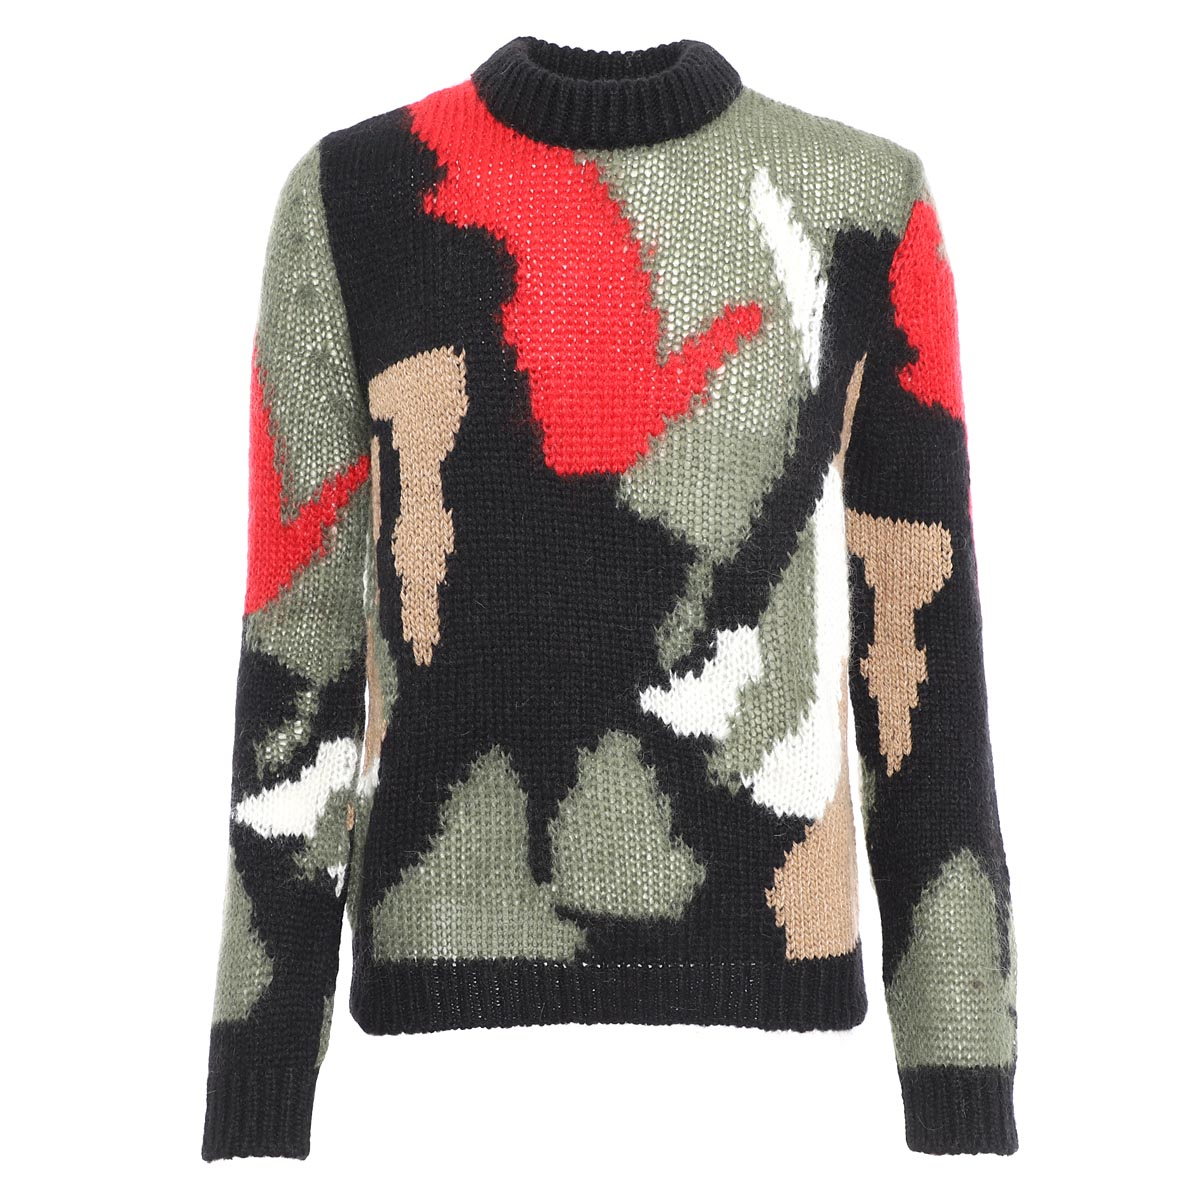 トップス, ニット・セーター  SAINT LAURENT PARIS 627313 yaqr2 1052 CAMO-PRINT SWEATER IN WOOL AND MOHAIR INTARSIA